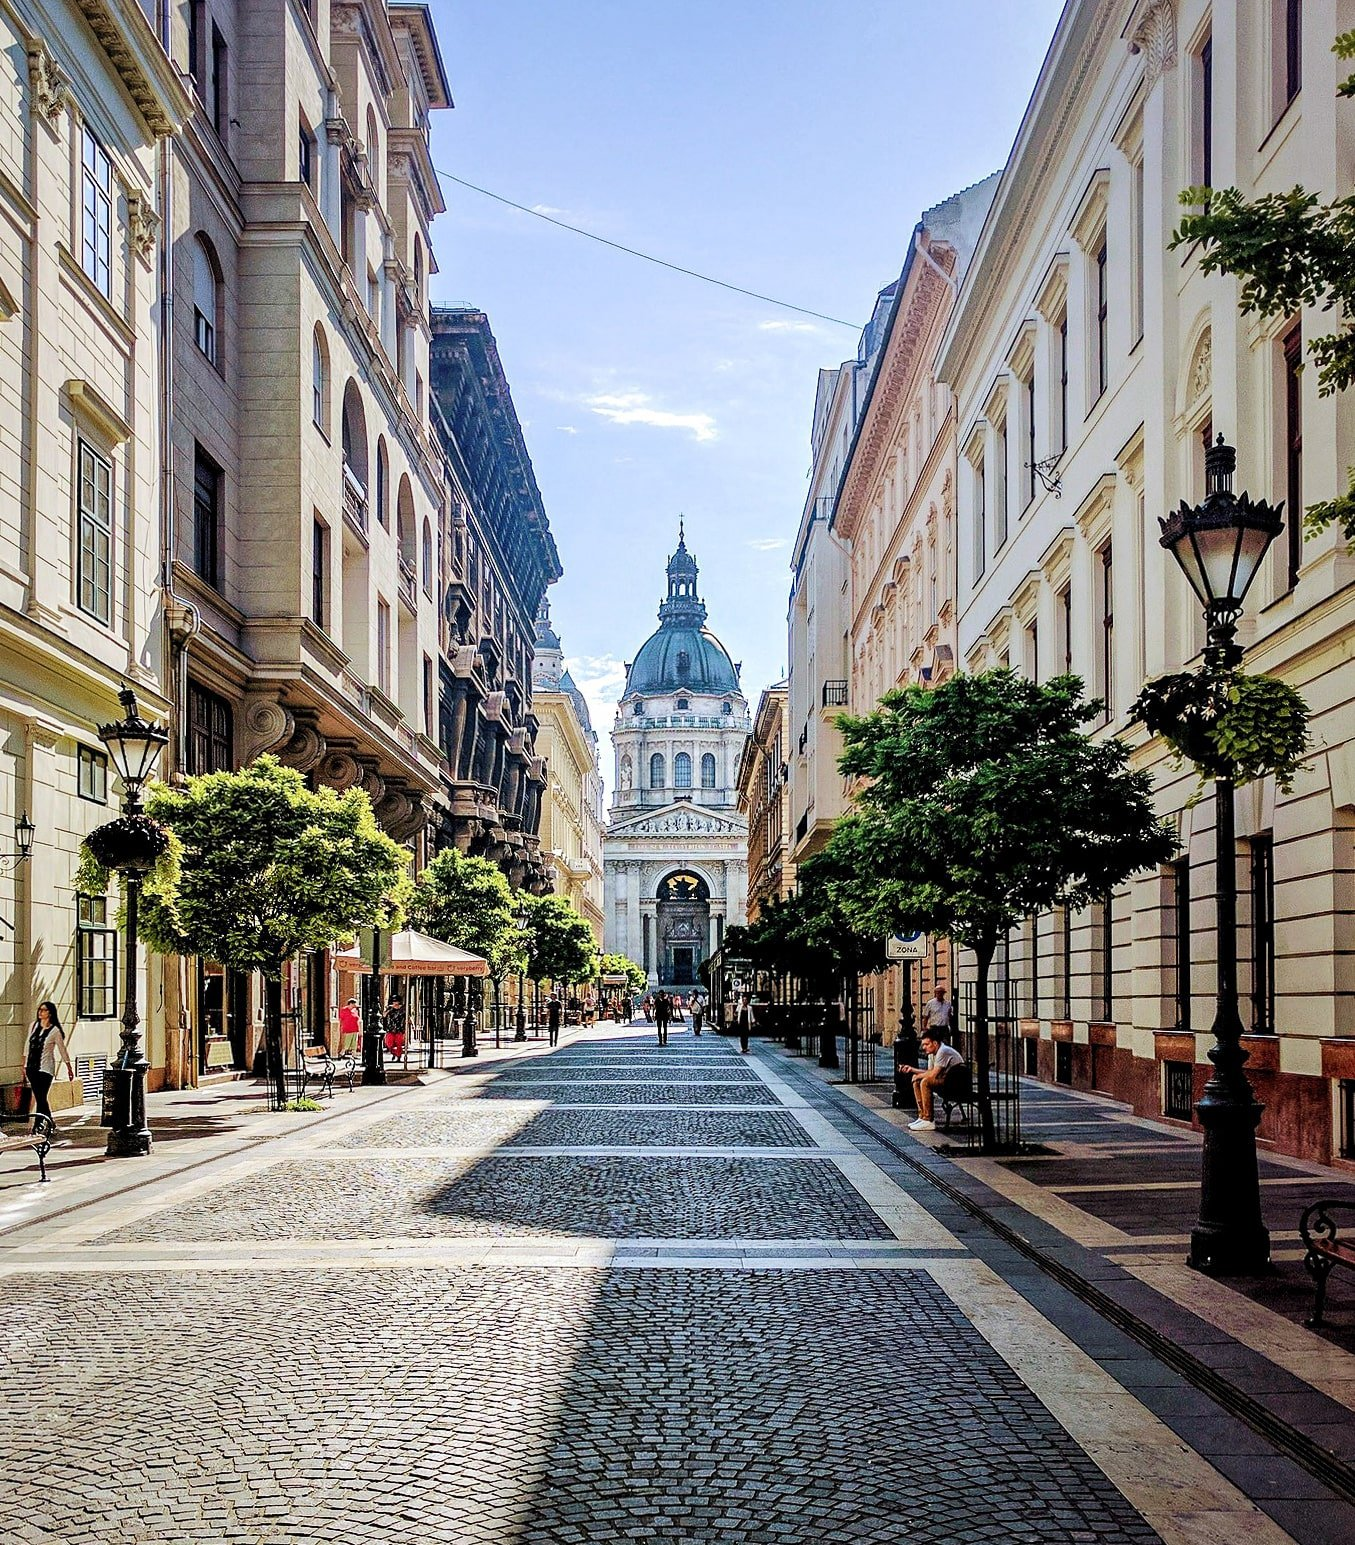 View of St. Stephen's Basilica in Pest - Budapest